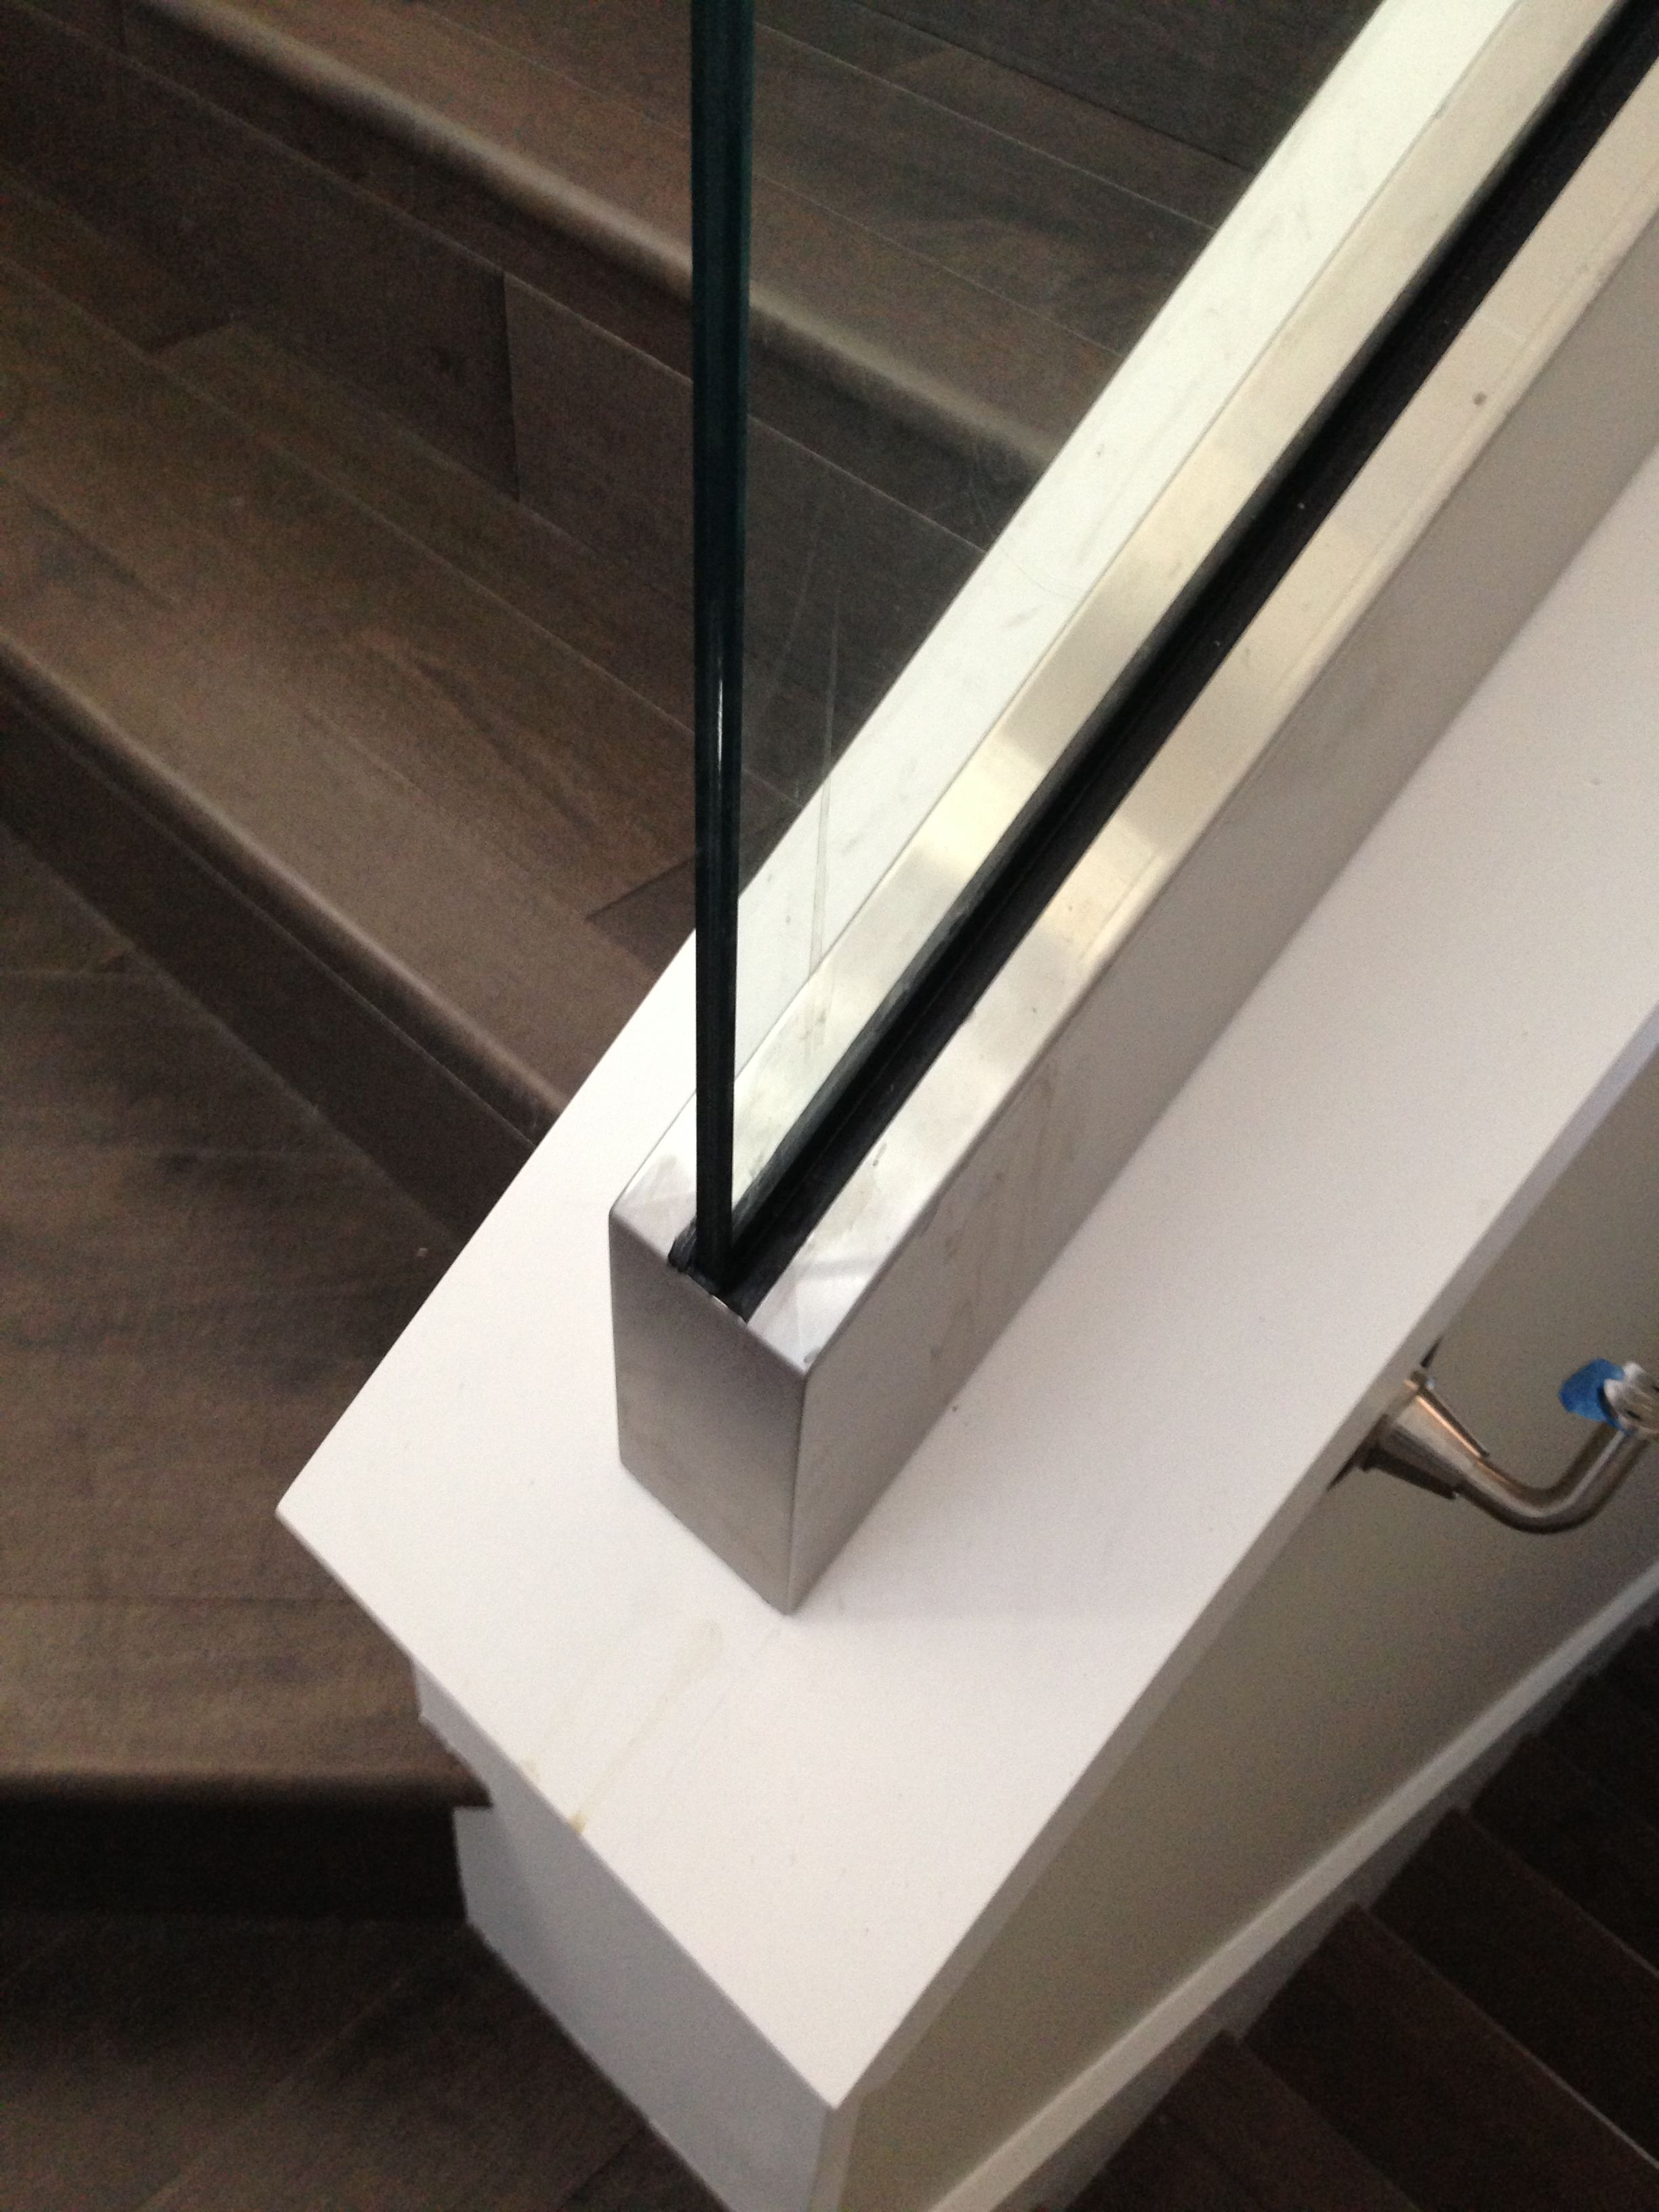 Best Custom Stainless Steel Cladding On Glass Stair Guardrail 640 x 480